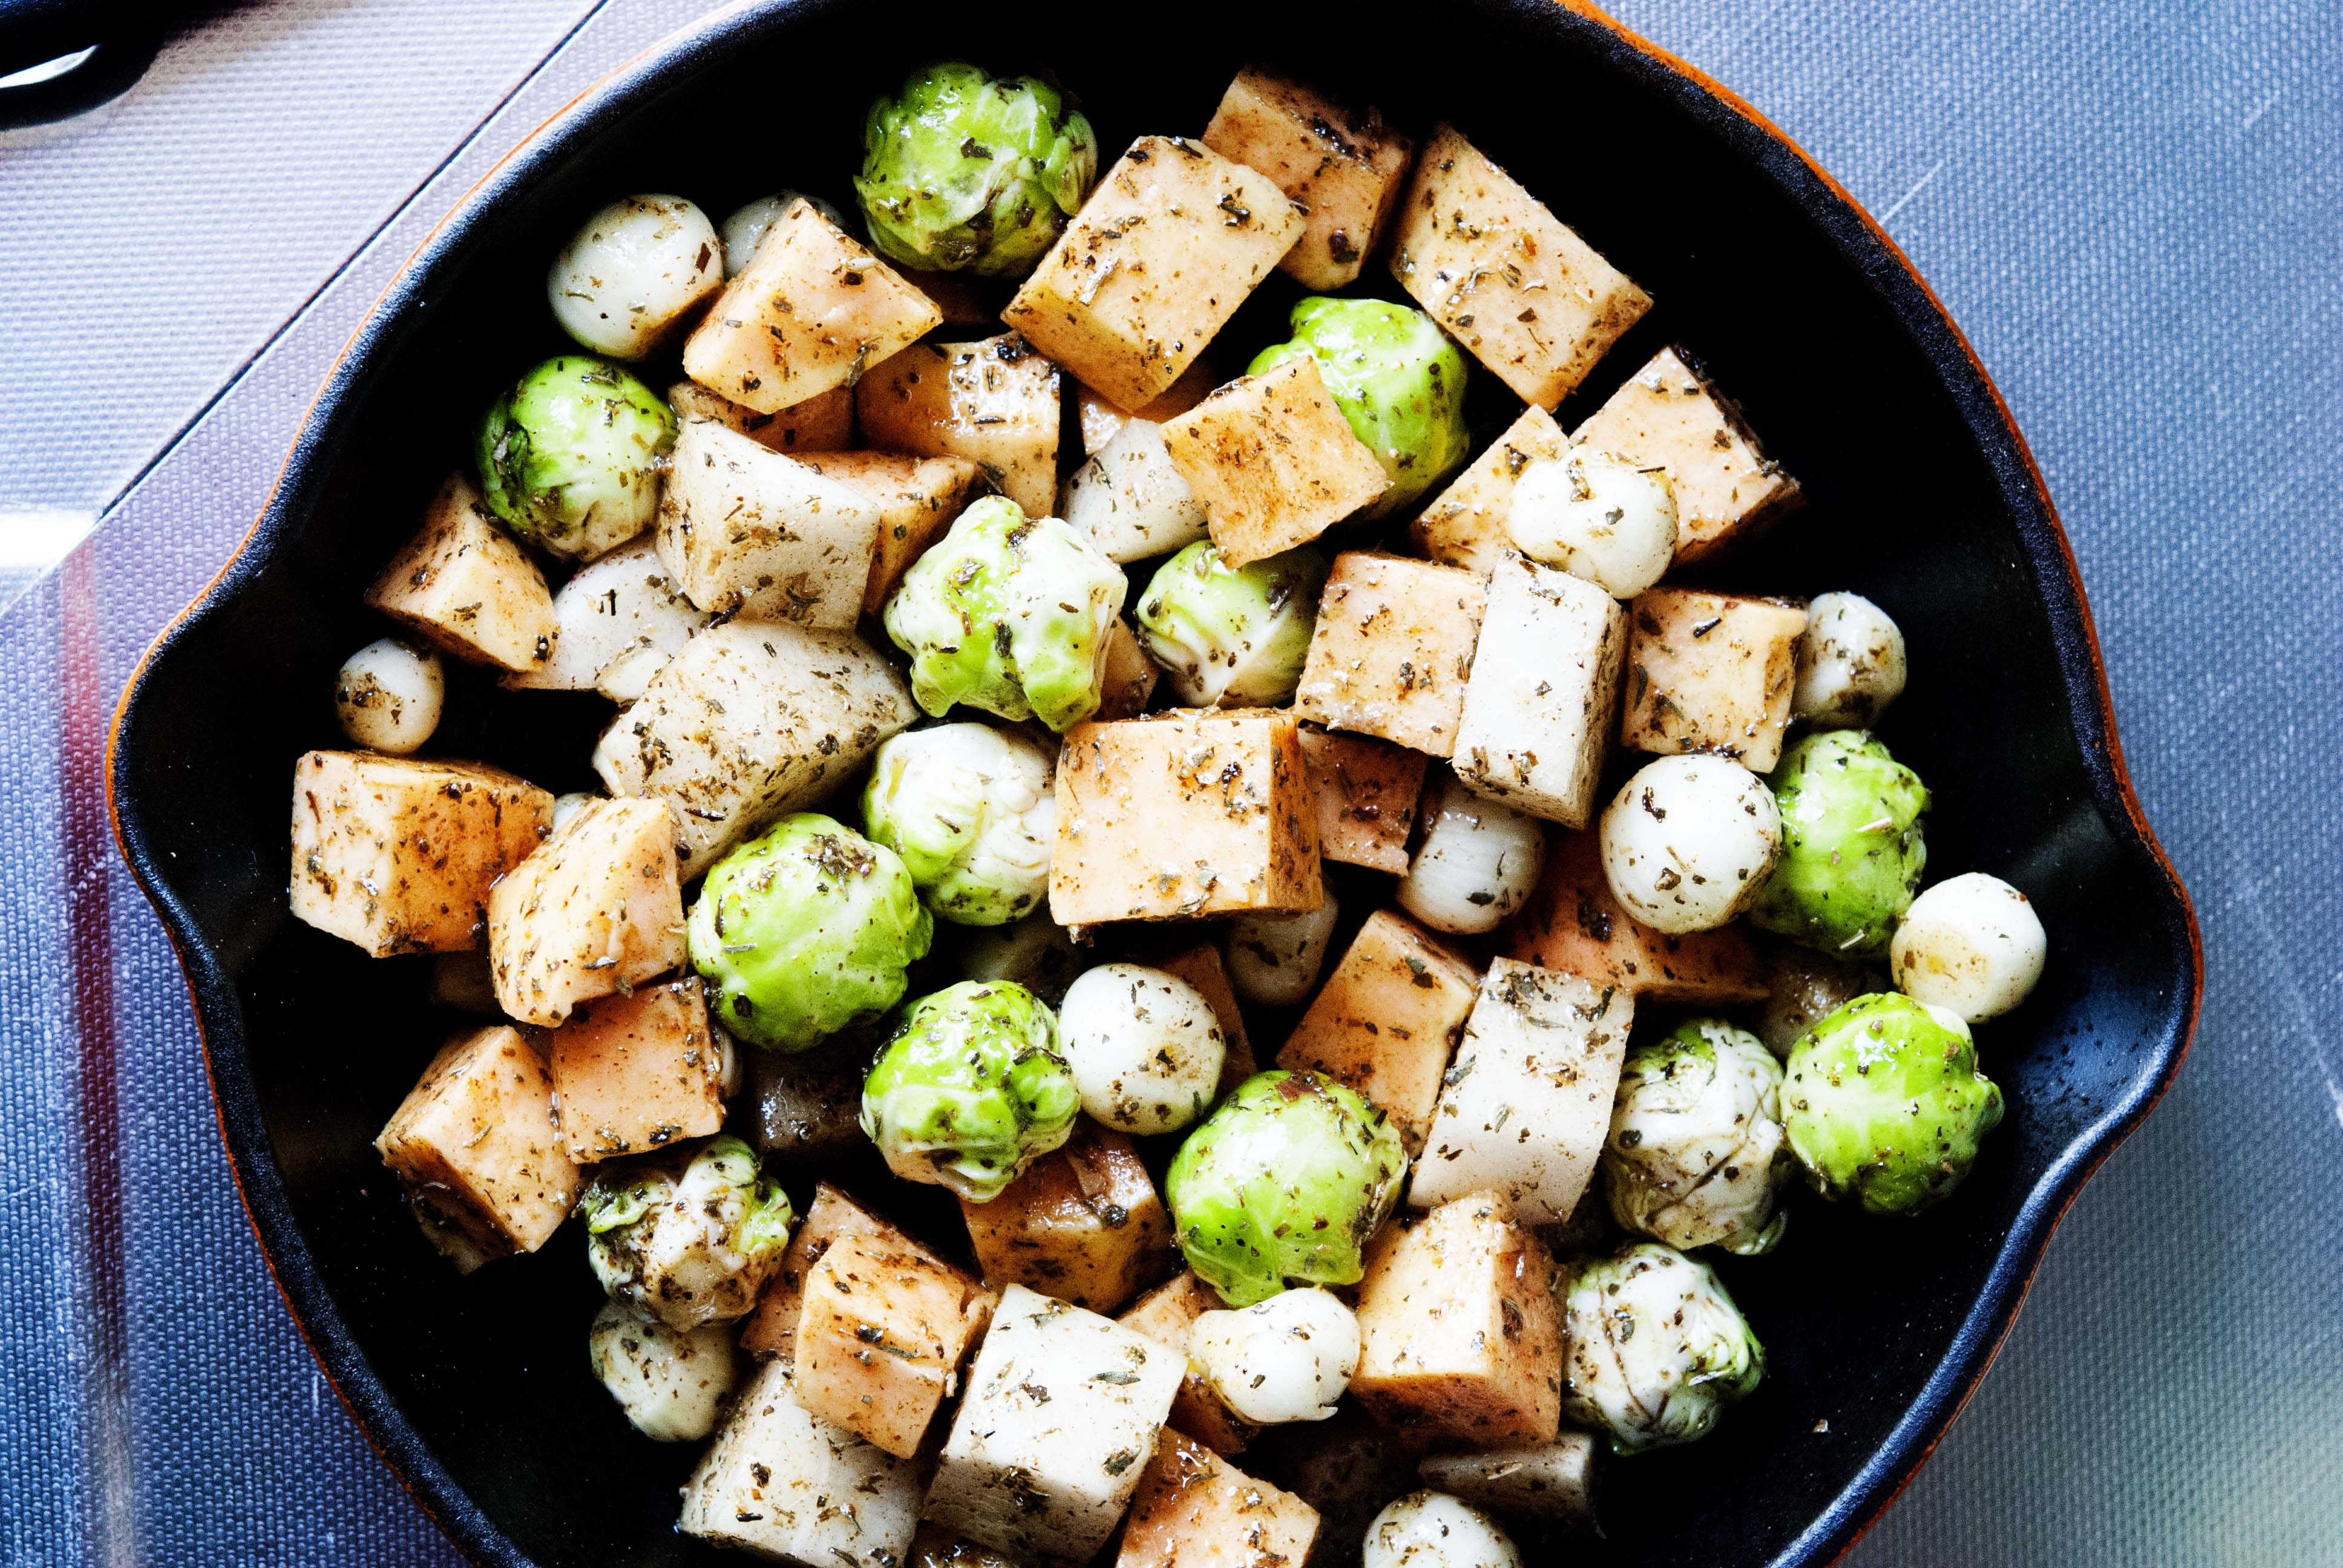 roasted-vegetables_expatcucina7